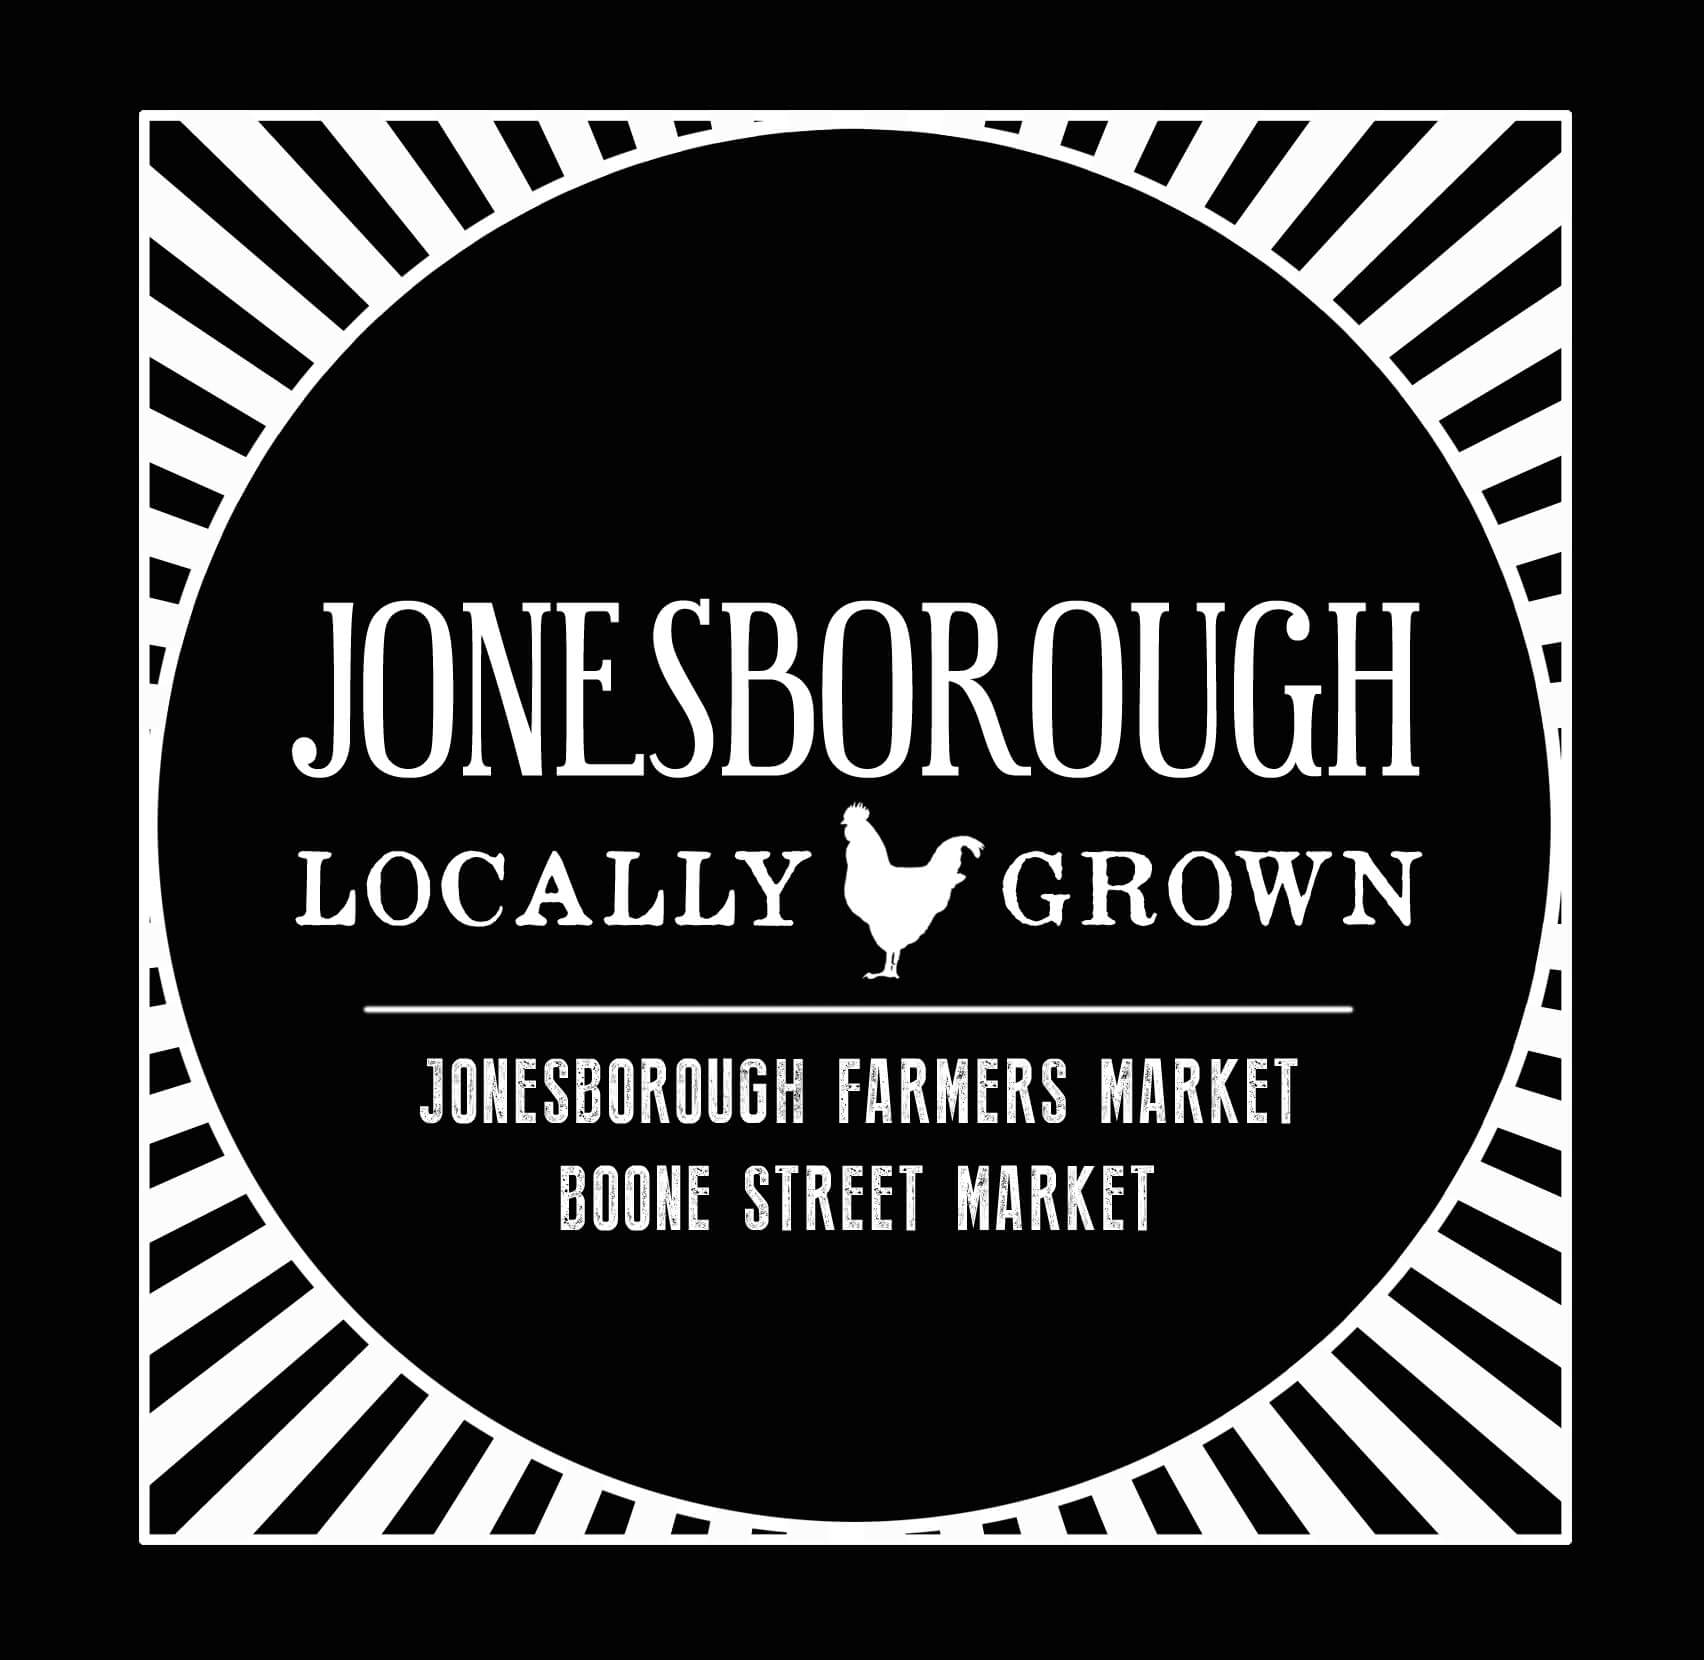 Jonesborough Locally Grown